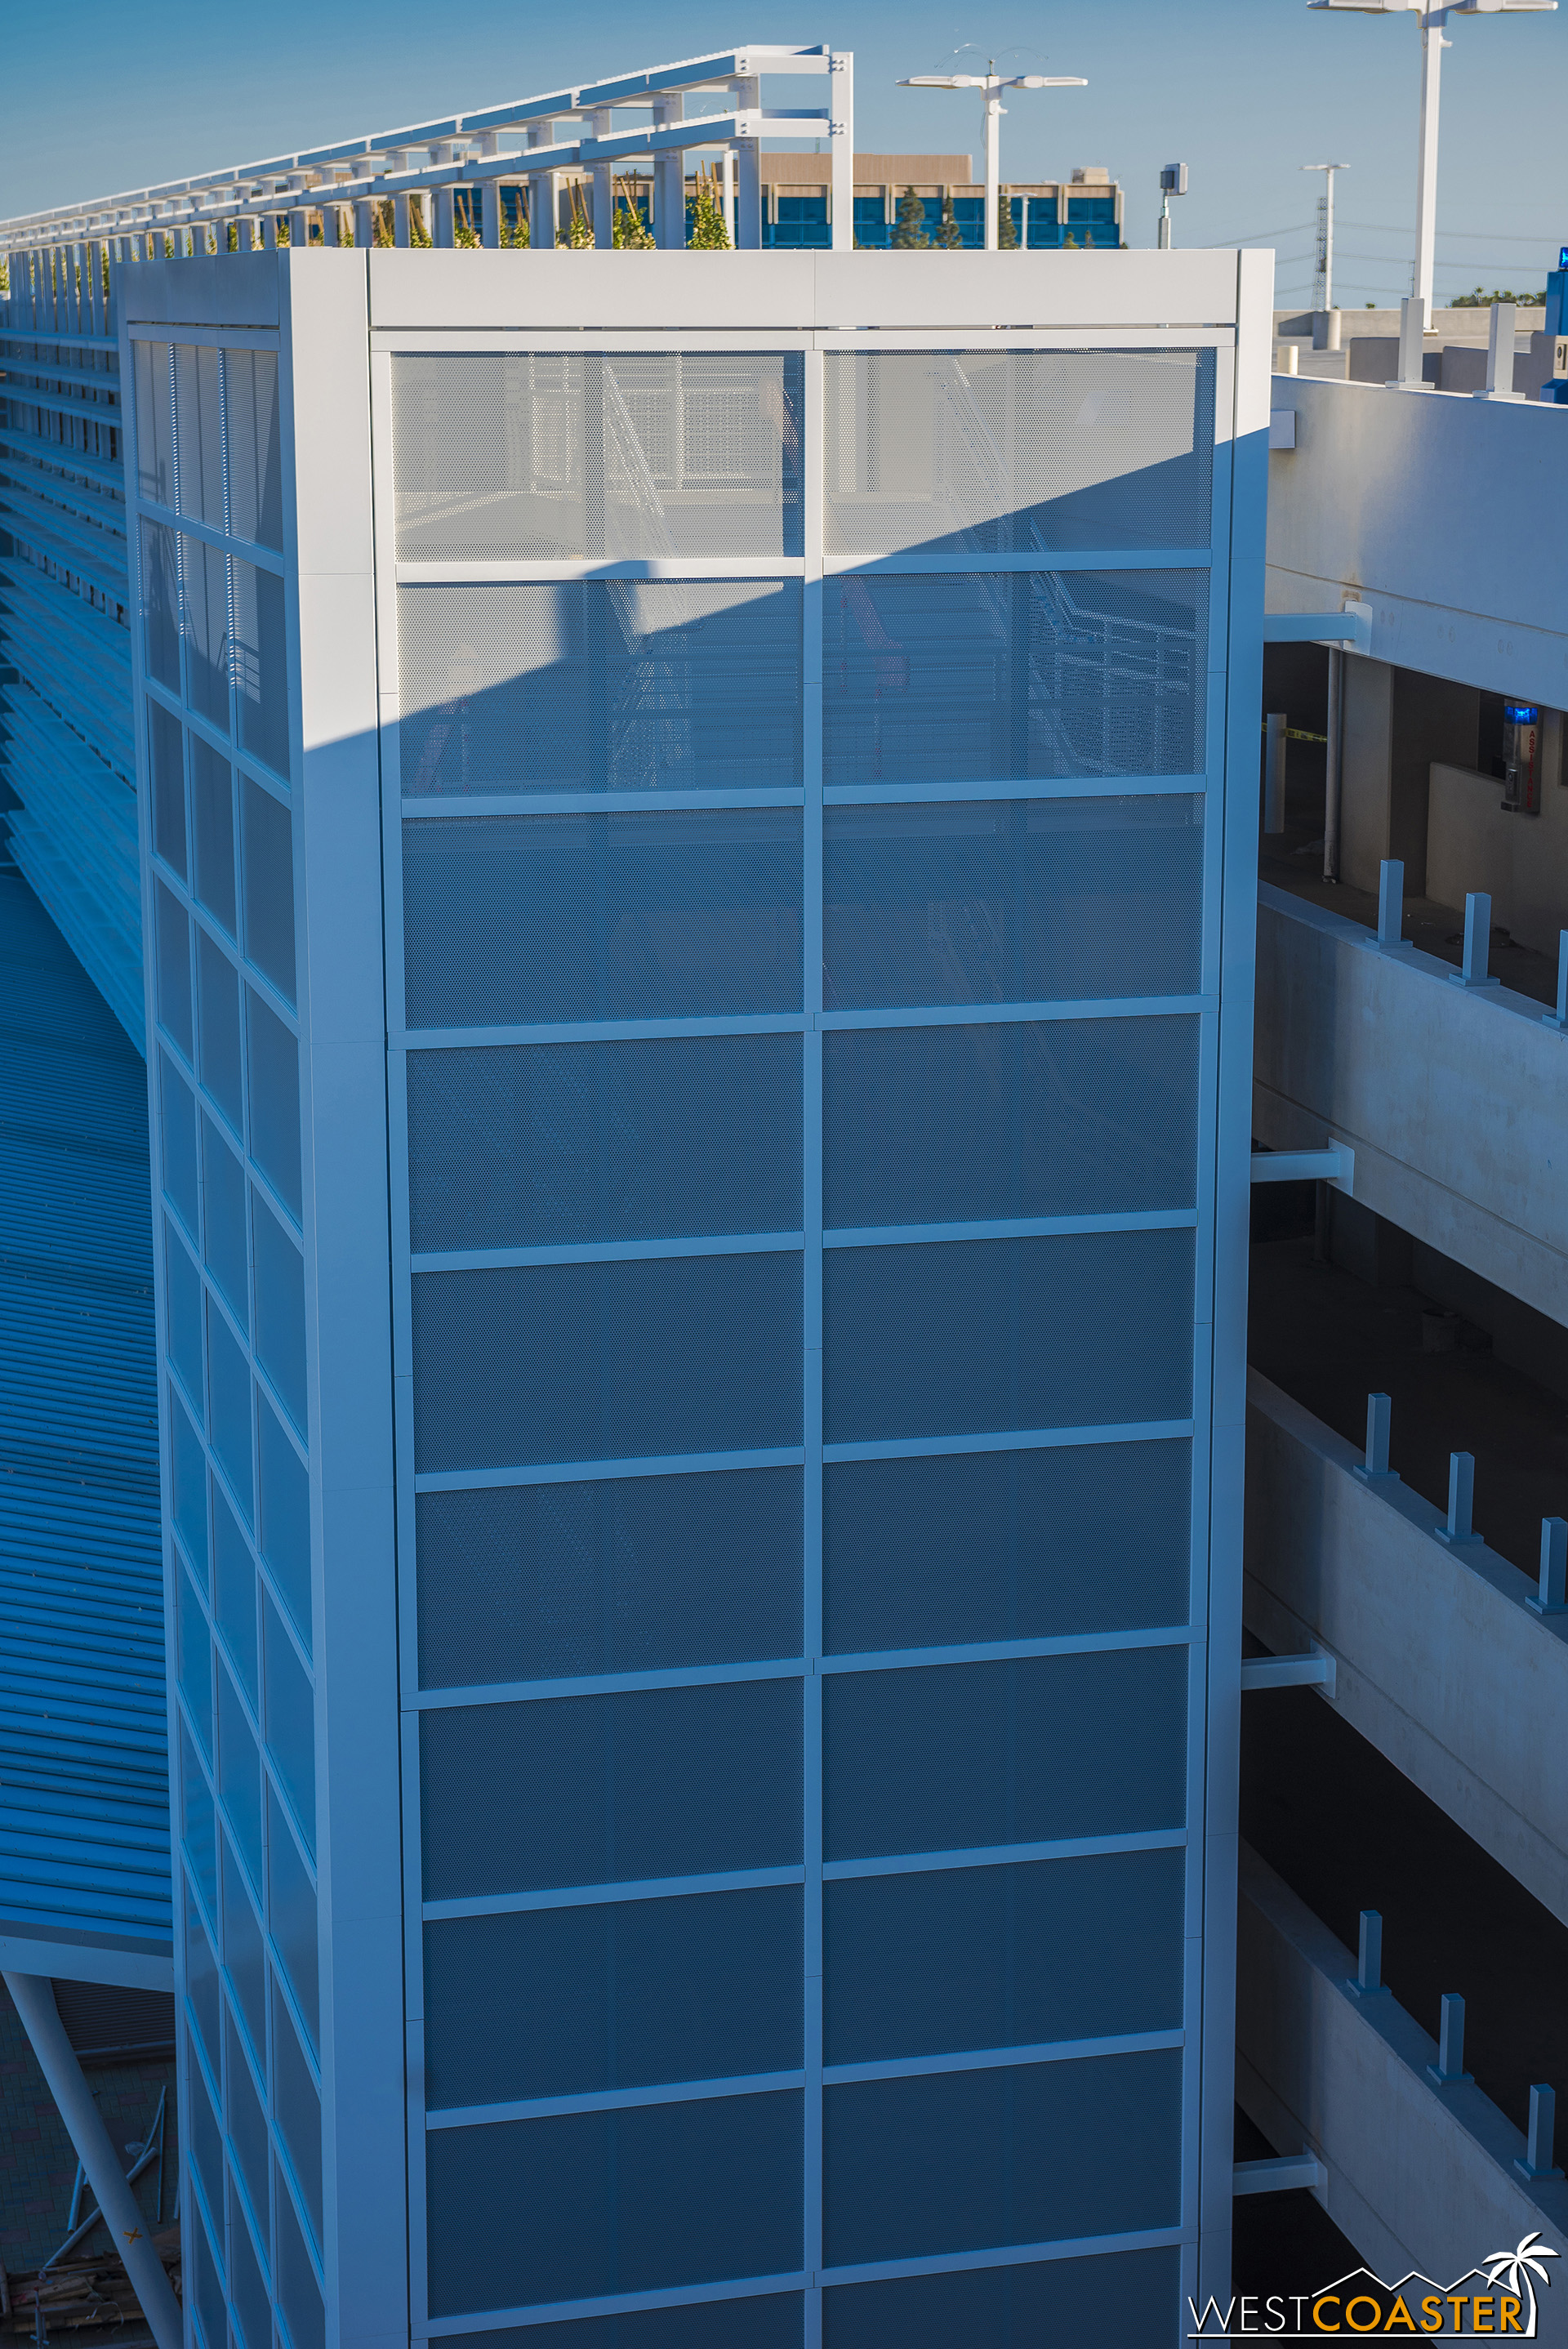 The stairwells have been fully shrouded in perforated metal panels.